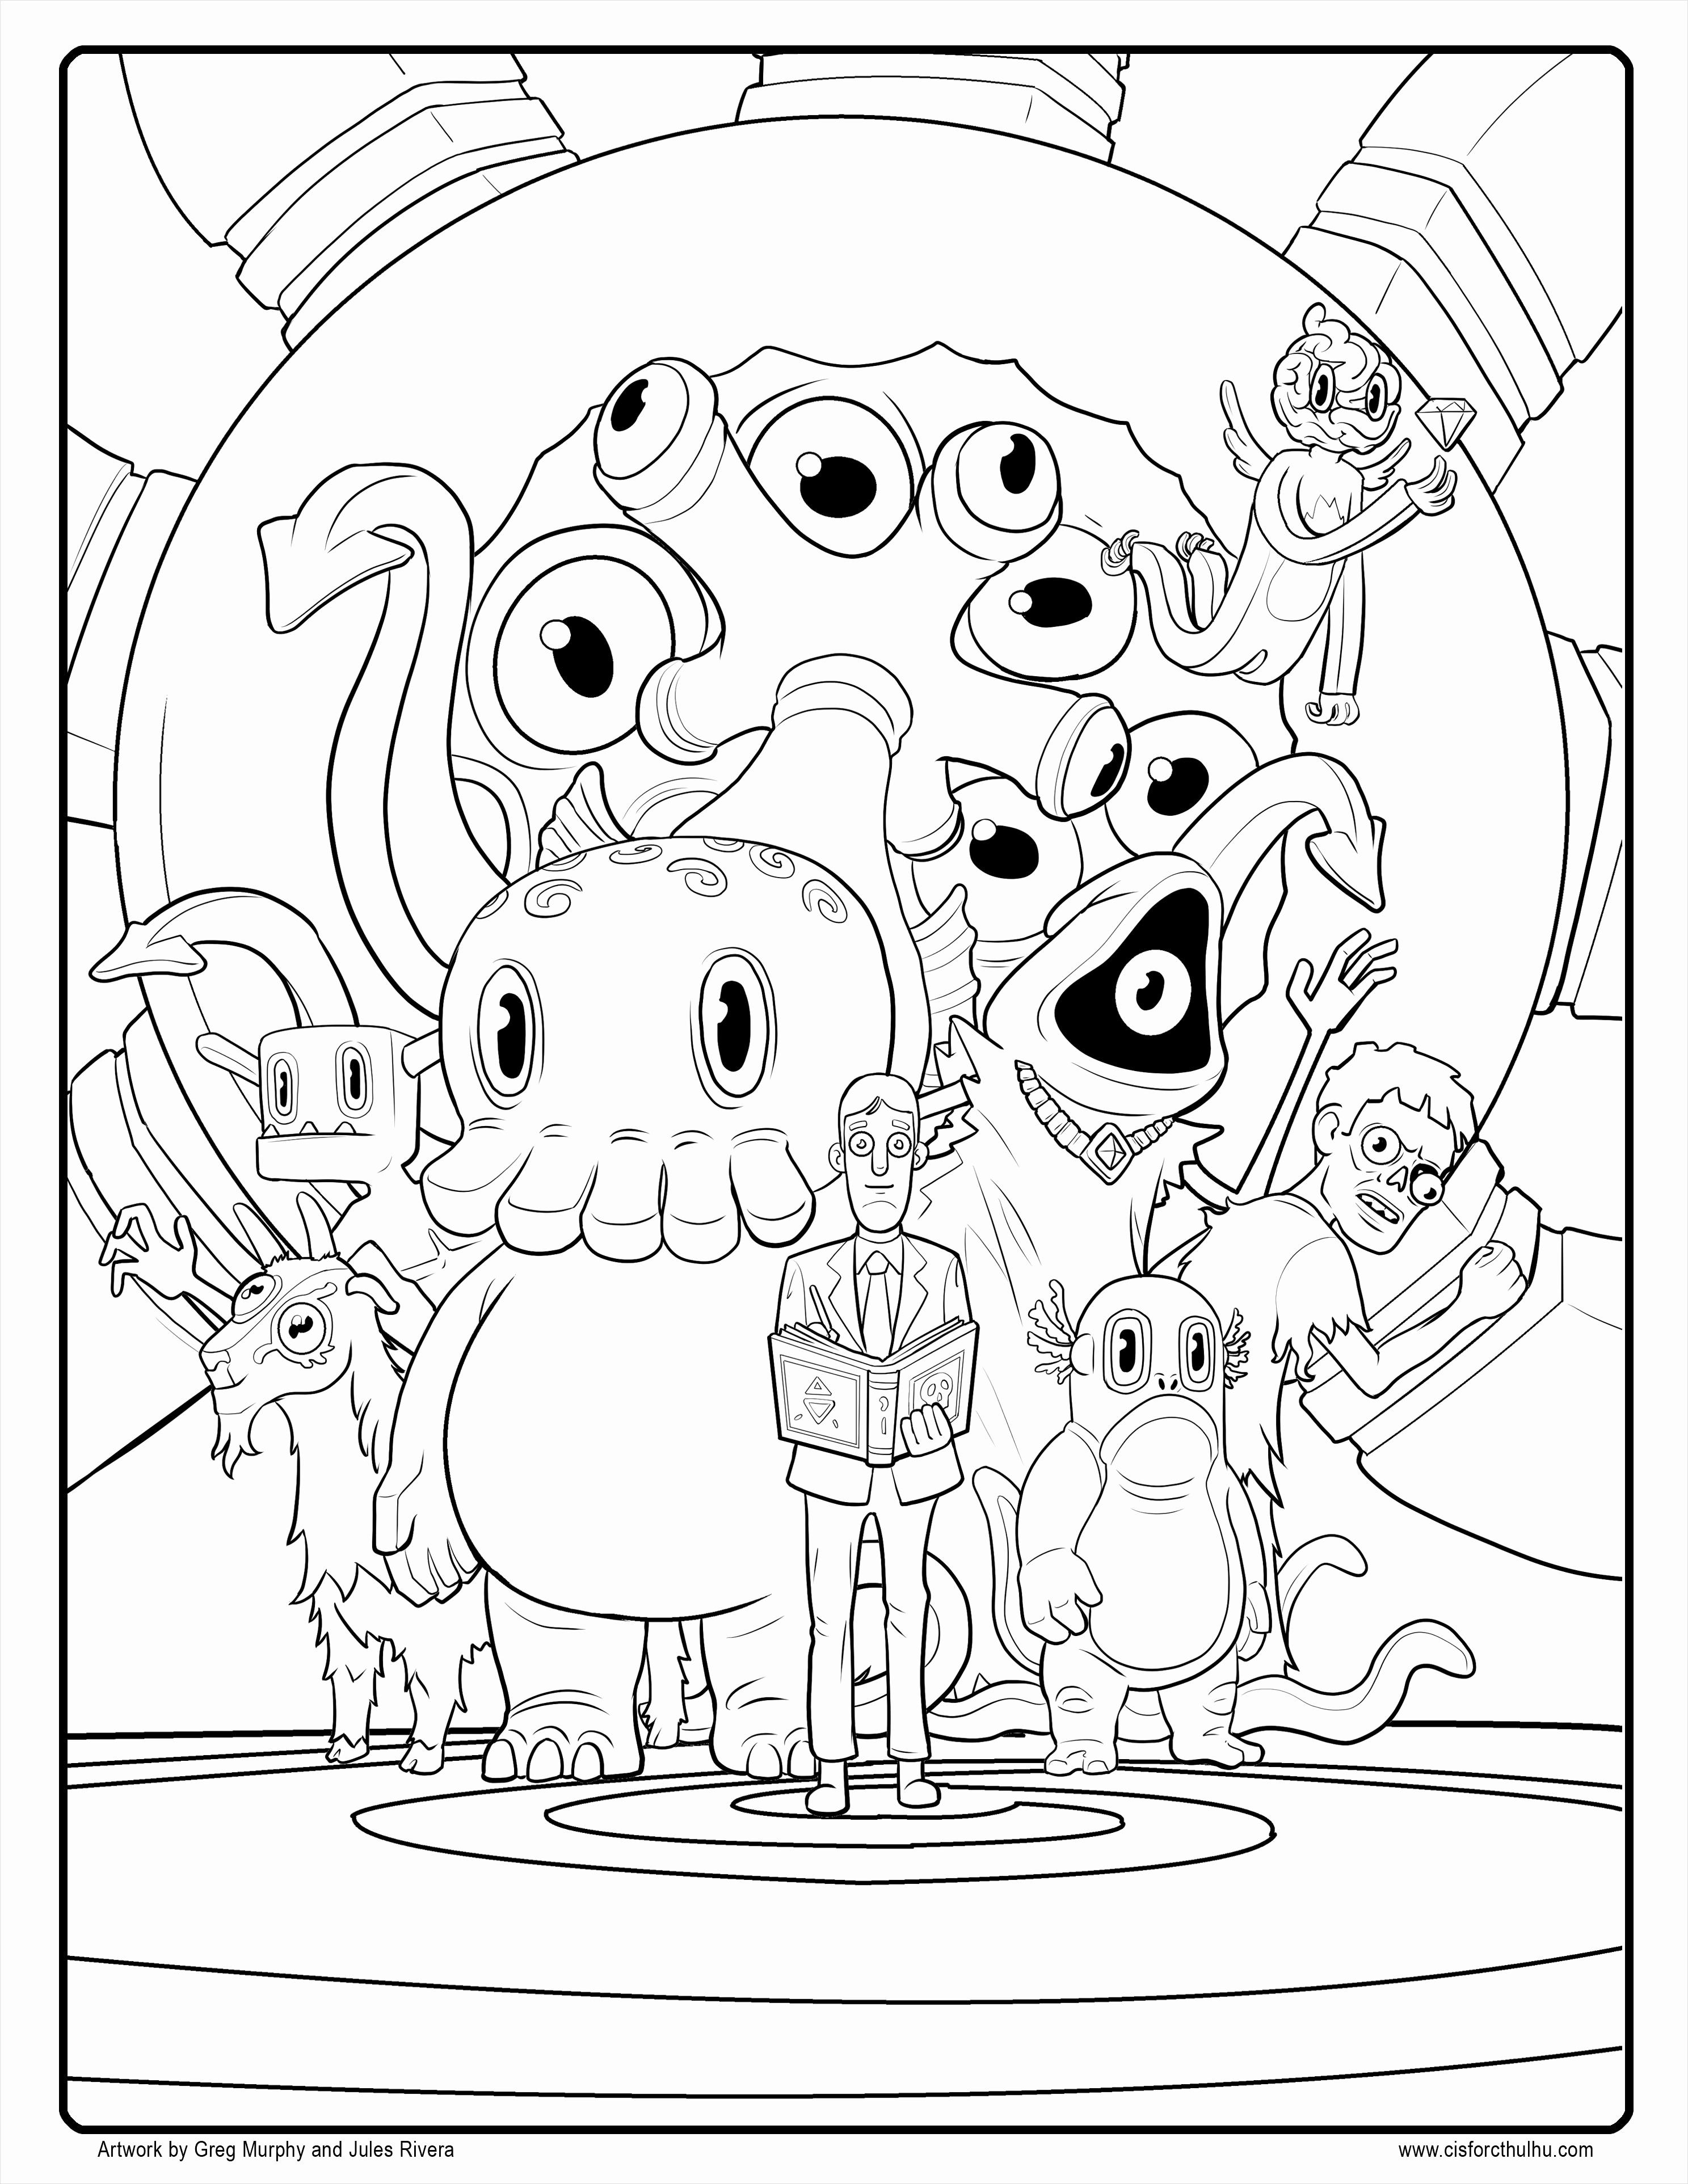 20 Easter Coloring Pages that You Can Print Gallery - Coloring Sheets